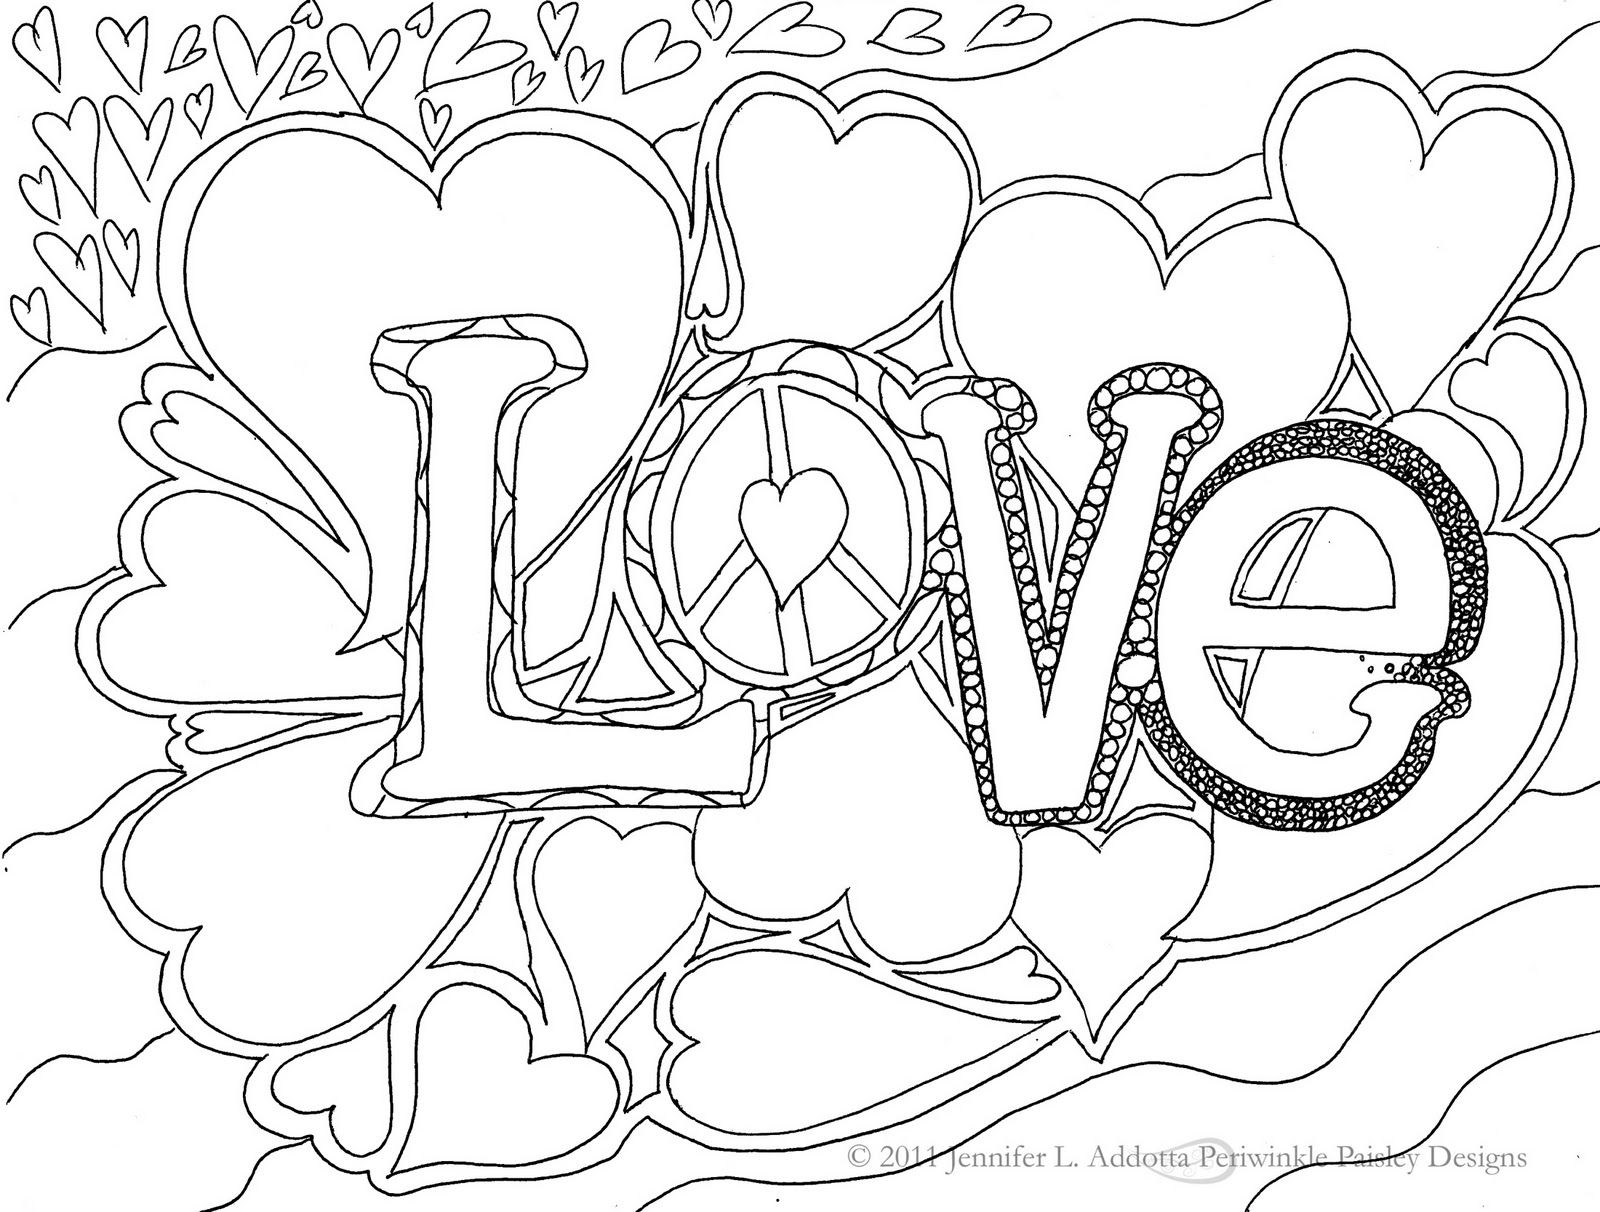 Free coloring pages love - Valentine S Coloring Pages Free Coloring Page For You Or Your Sweetie For Valentine S Day Click Valentines Day Pinterest Adult Coloring And